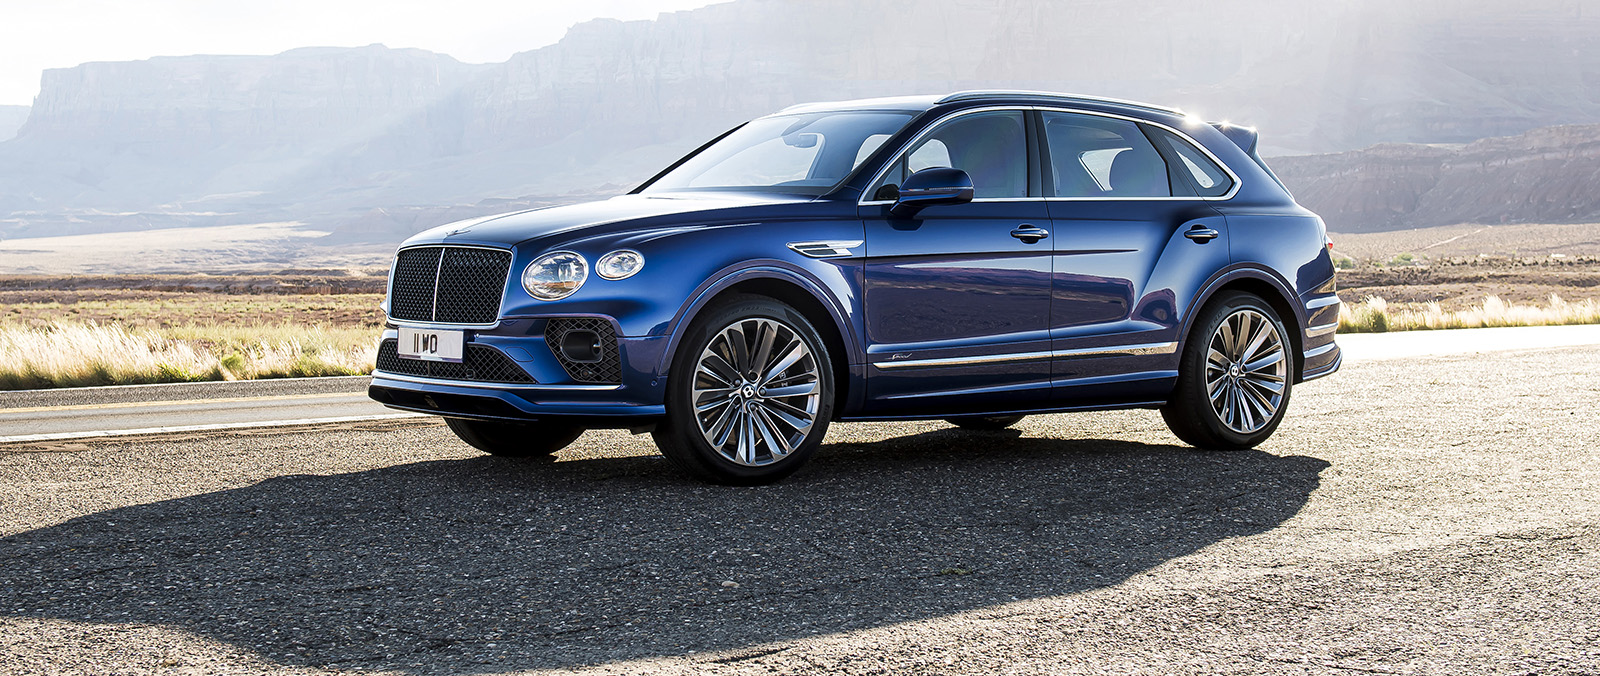 Bentley Bentayga Speed is dikke SUV